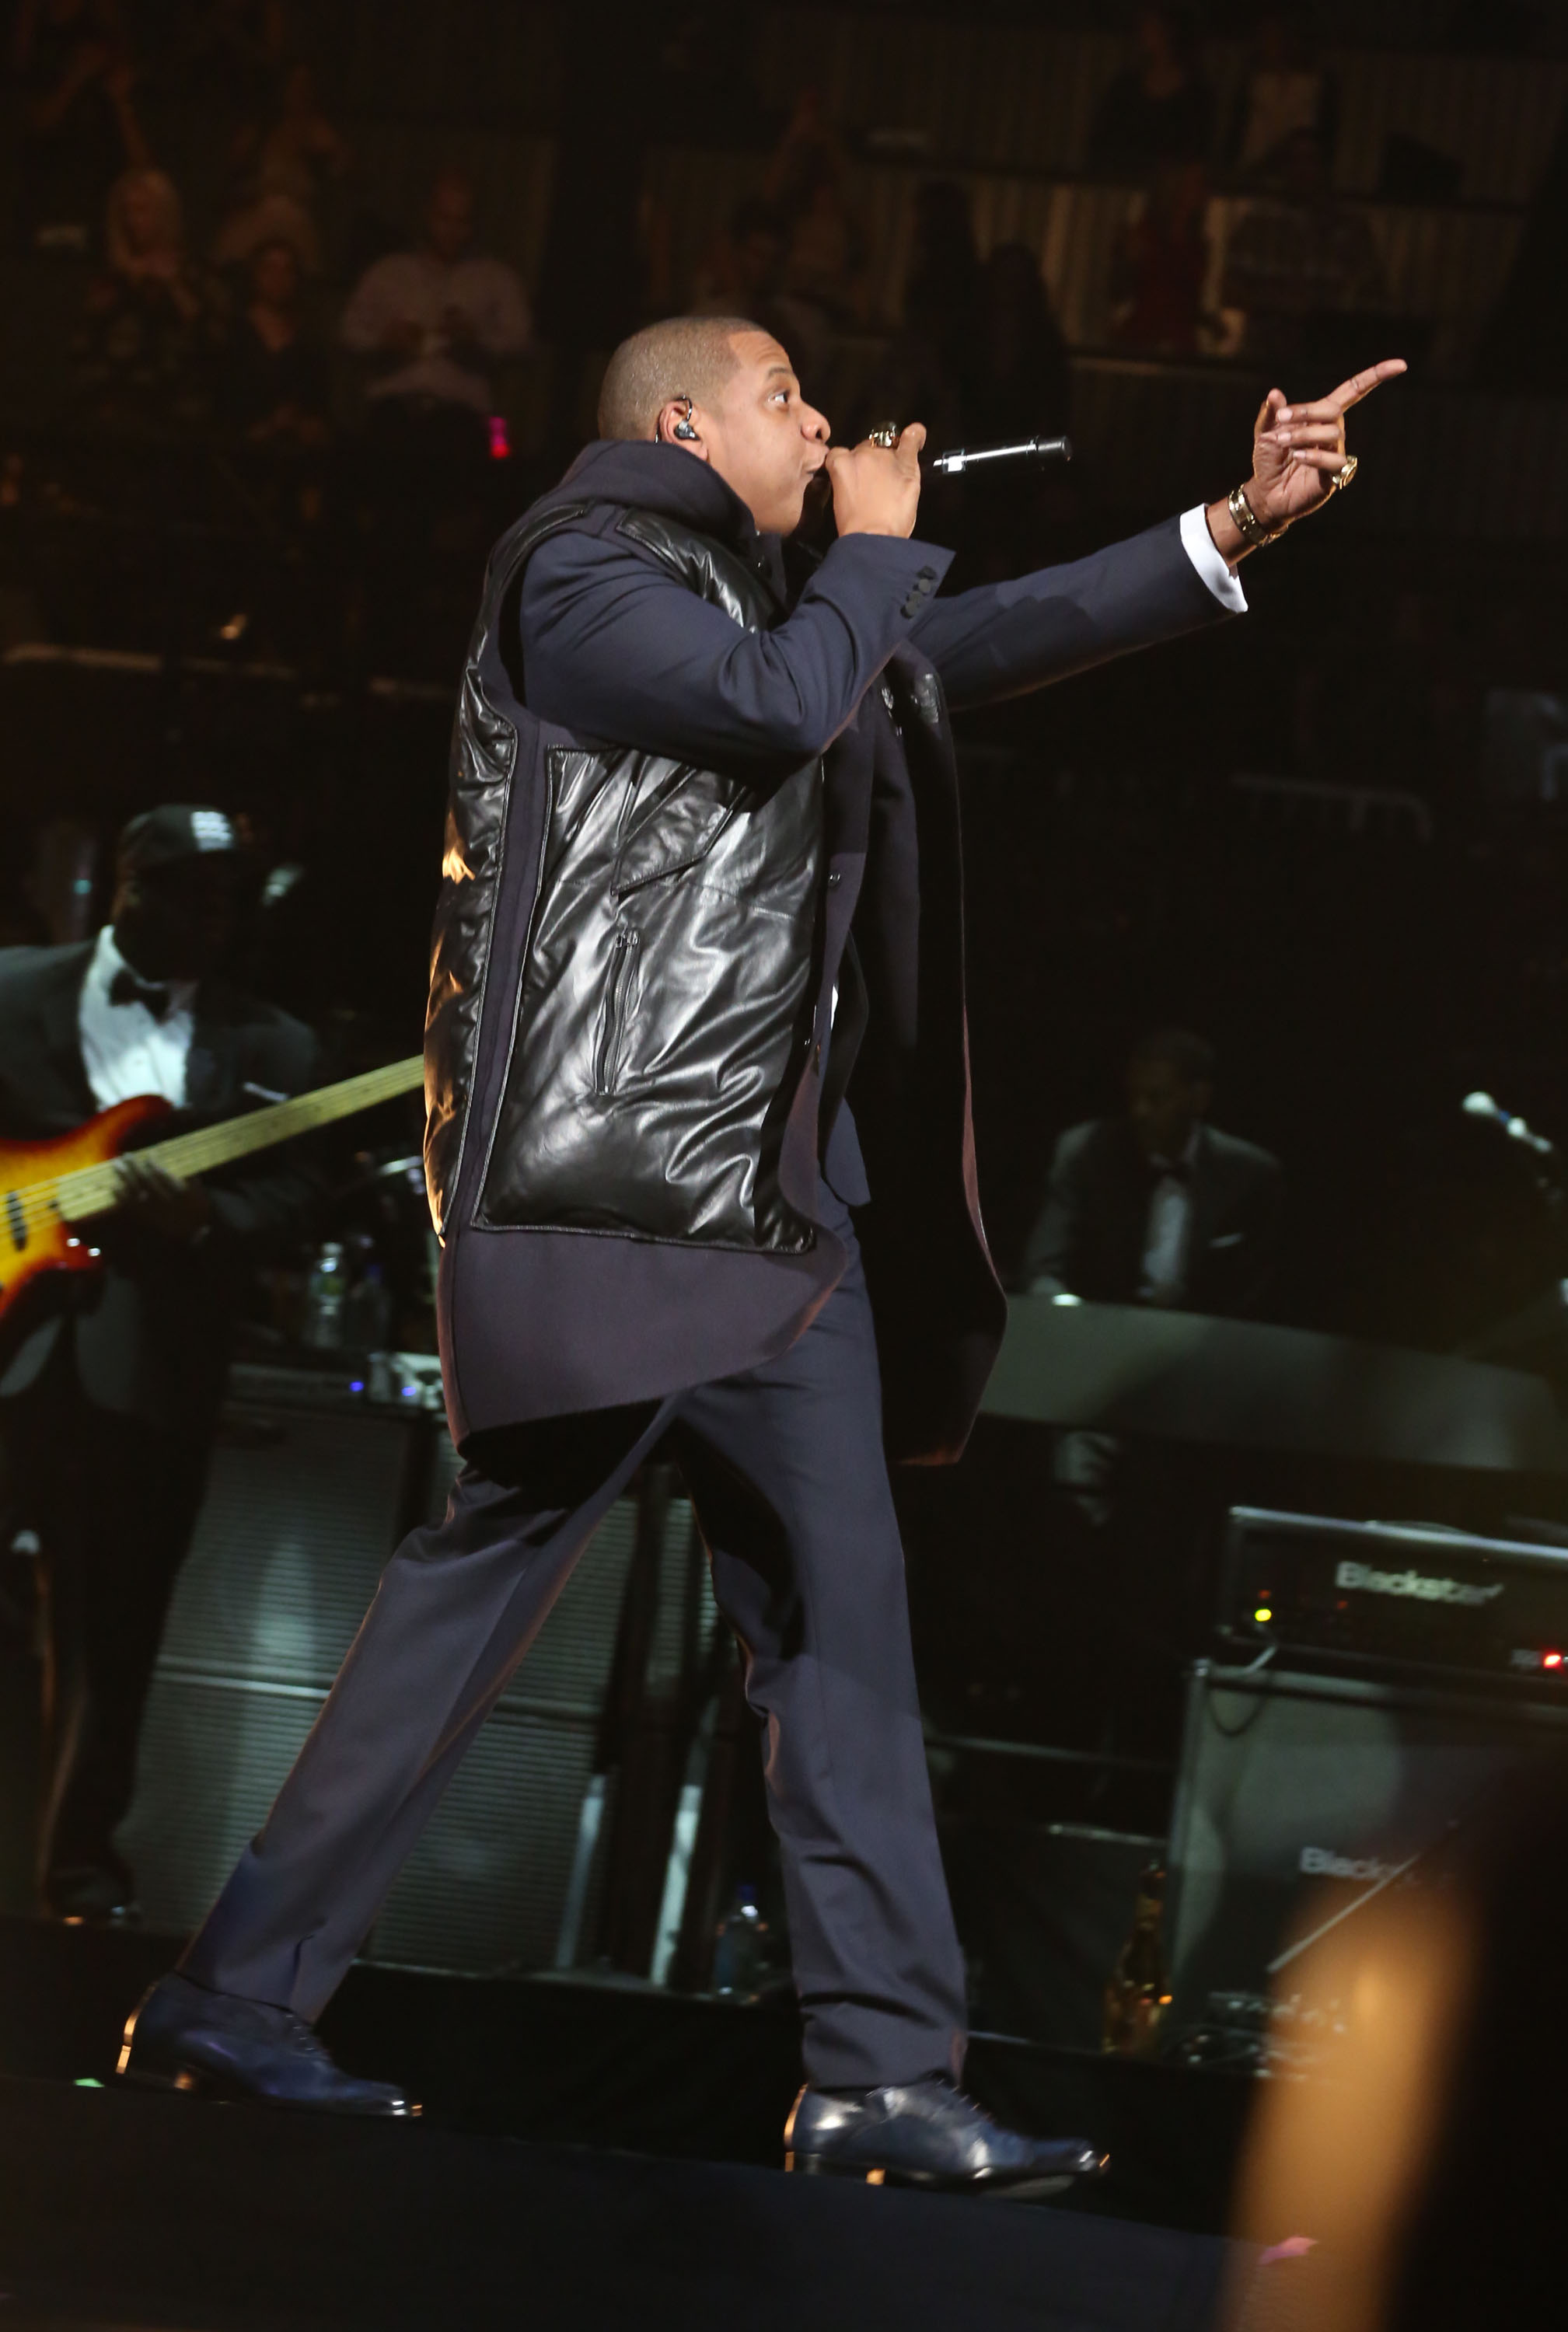 Jay-Z and Coldplay performed a joint concert in Brooklyn.